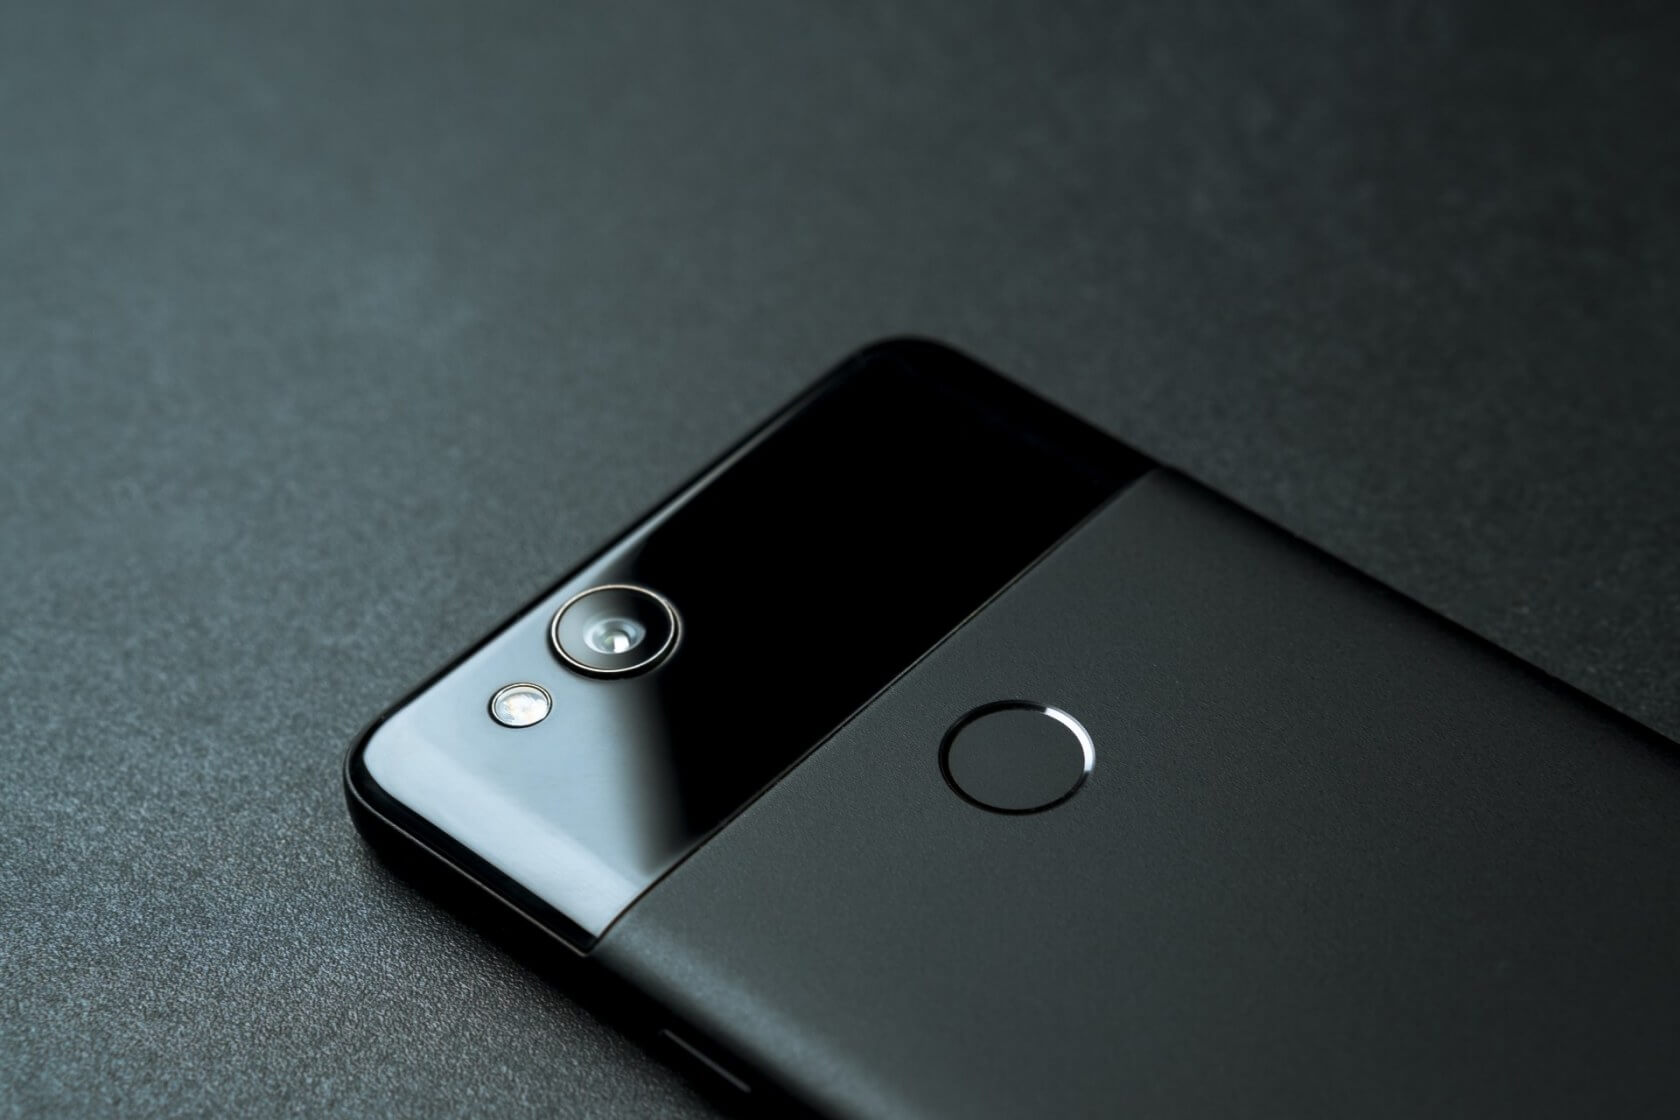 Google ends official support for the original Pixel 1 phone